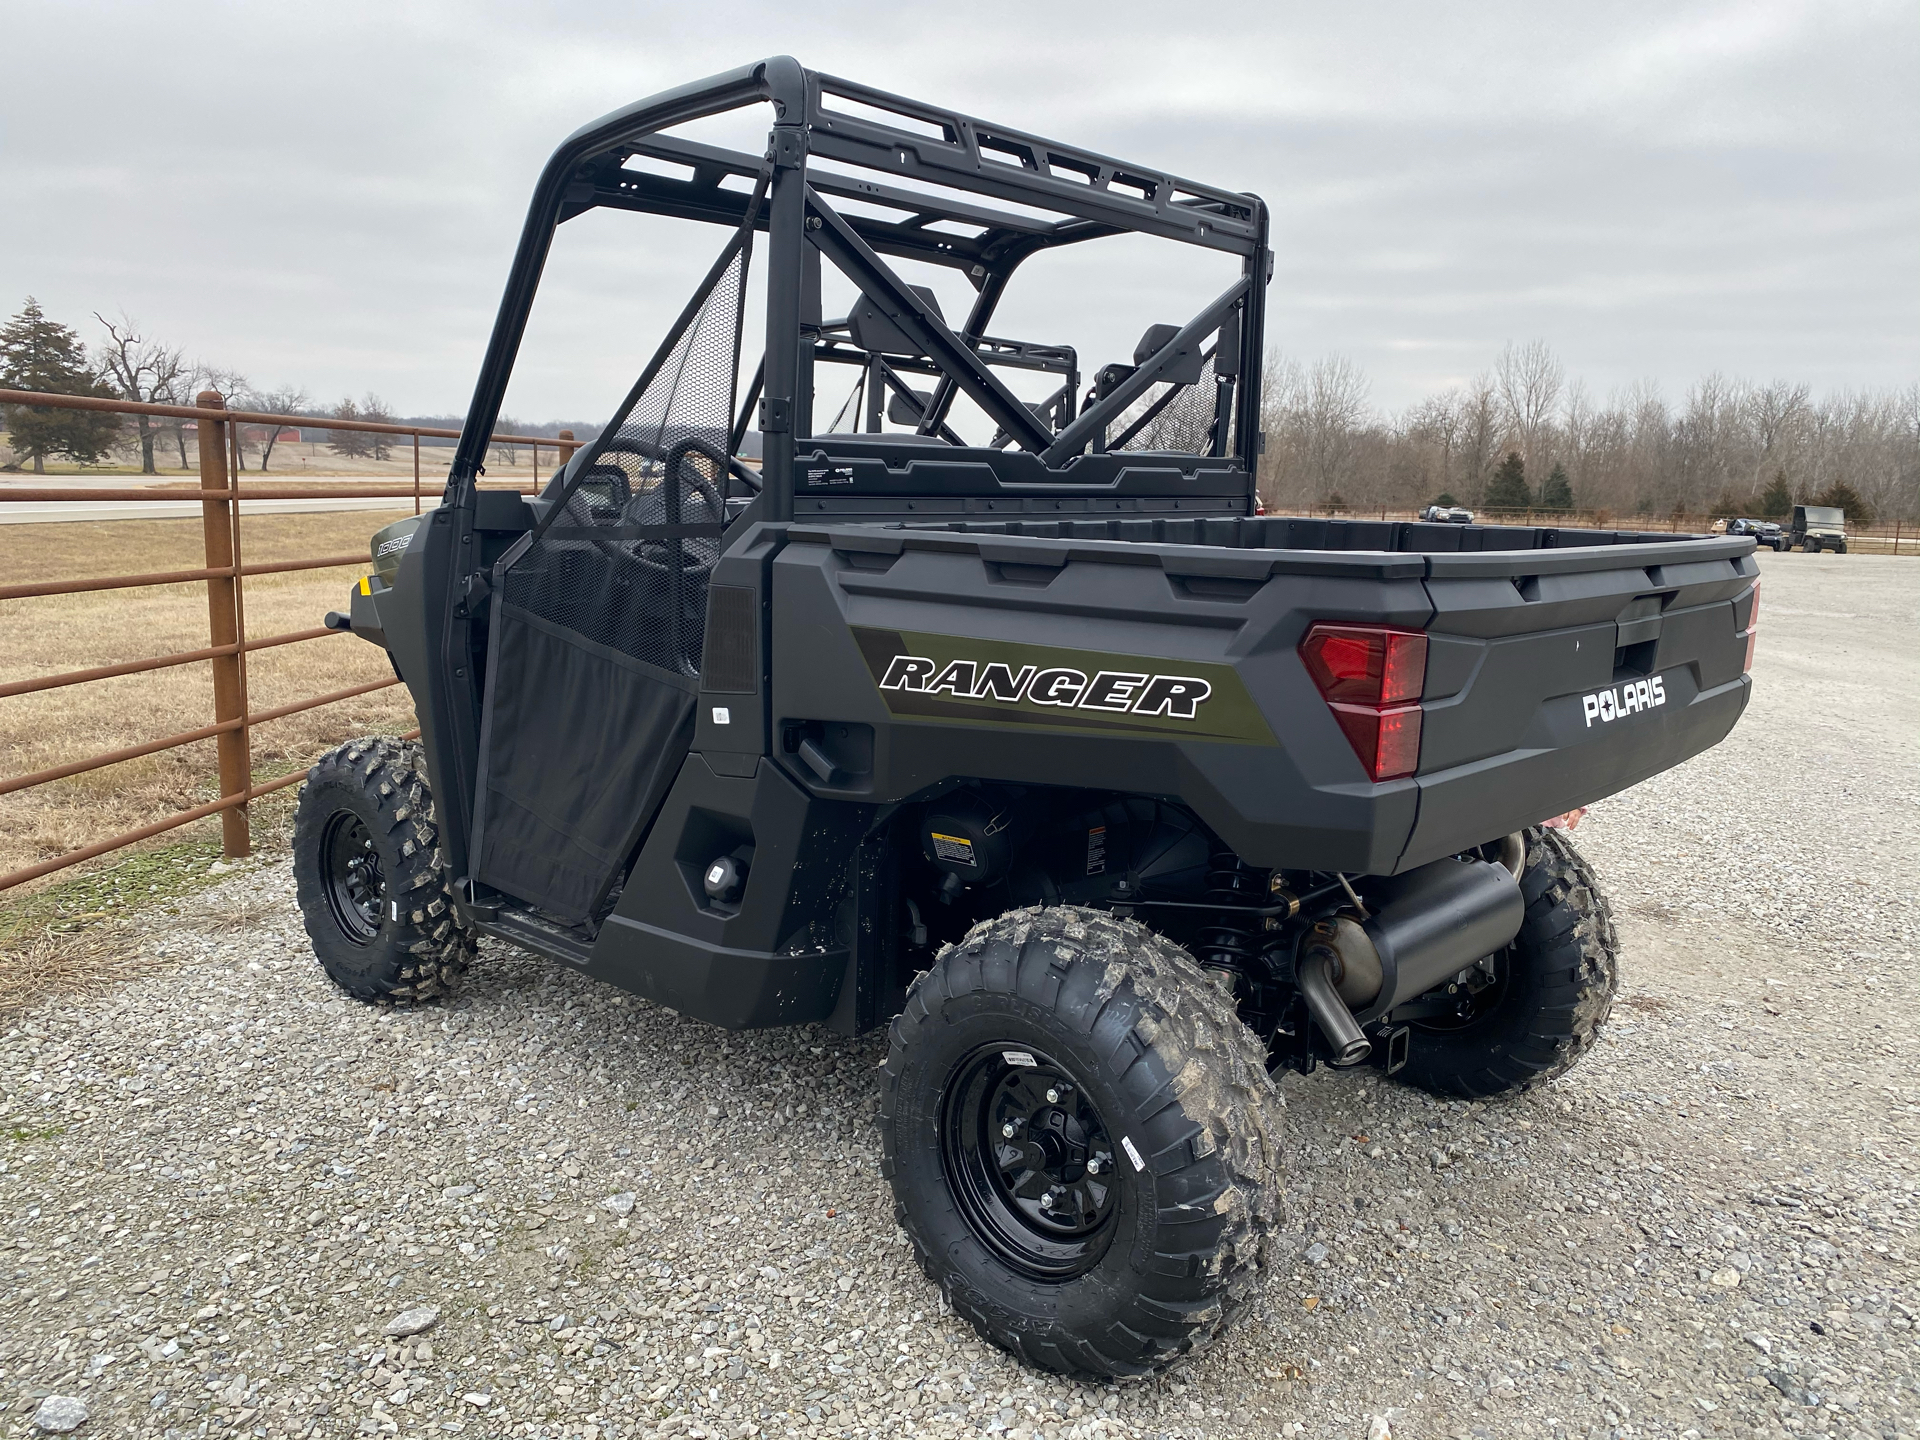 2021 Polaris Ranger 1000 EPS in Bolivar, Missouri - Photo 6